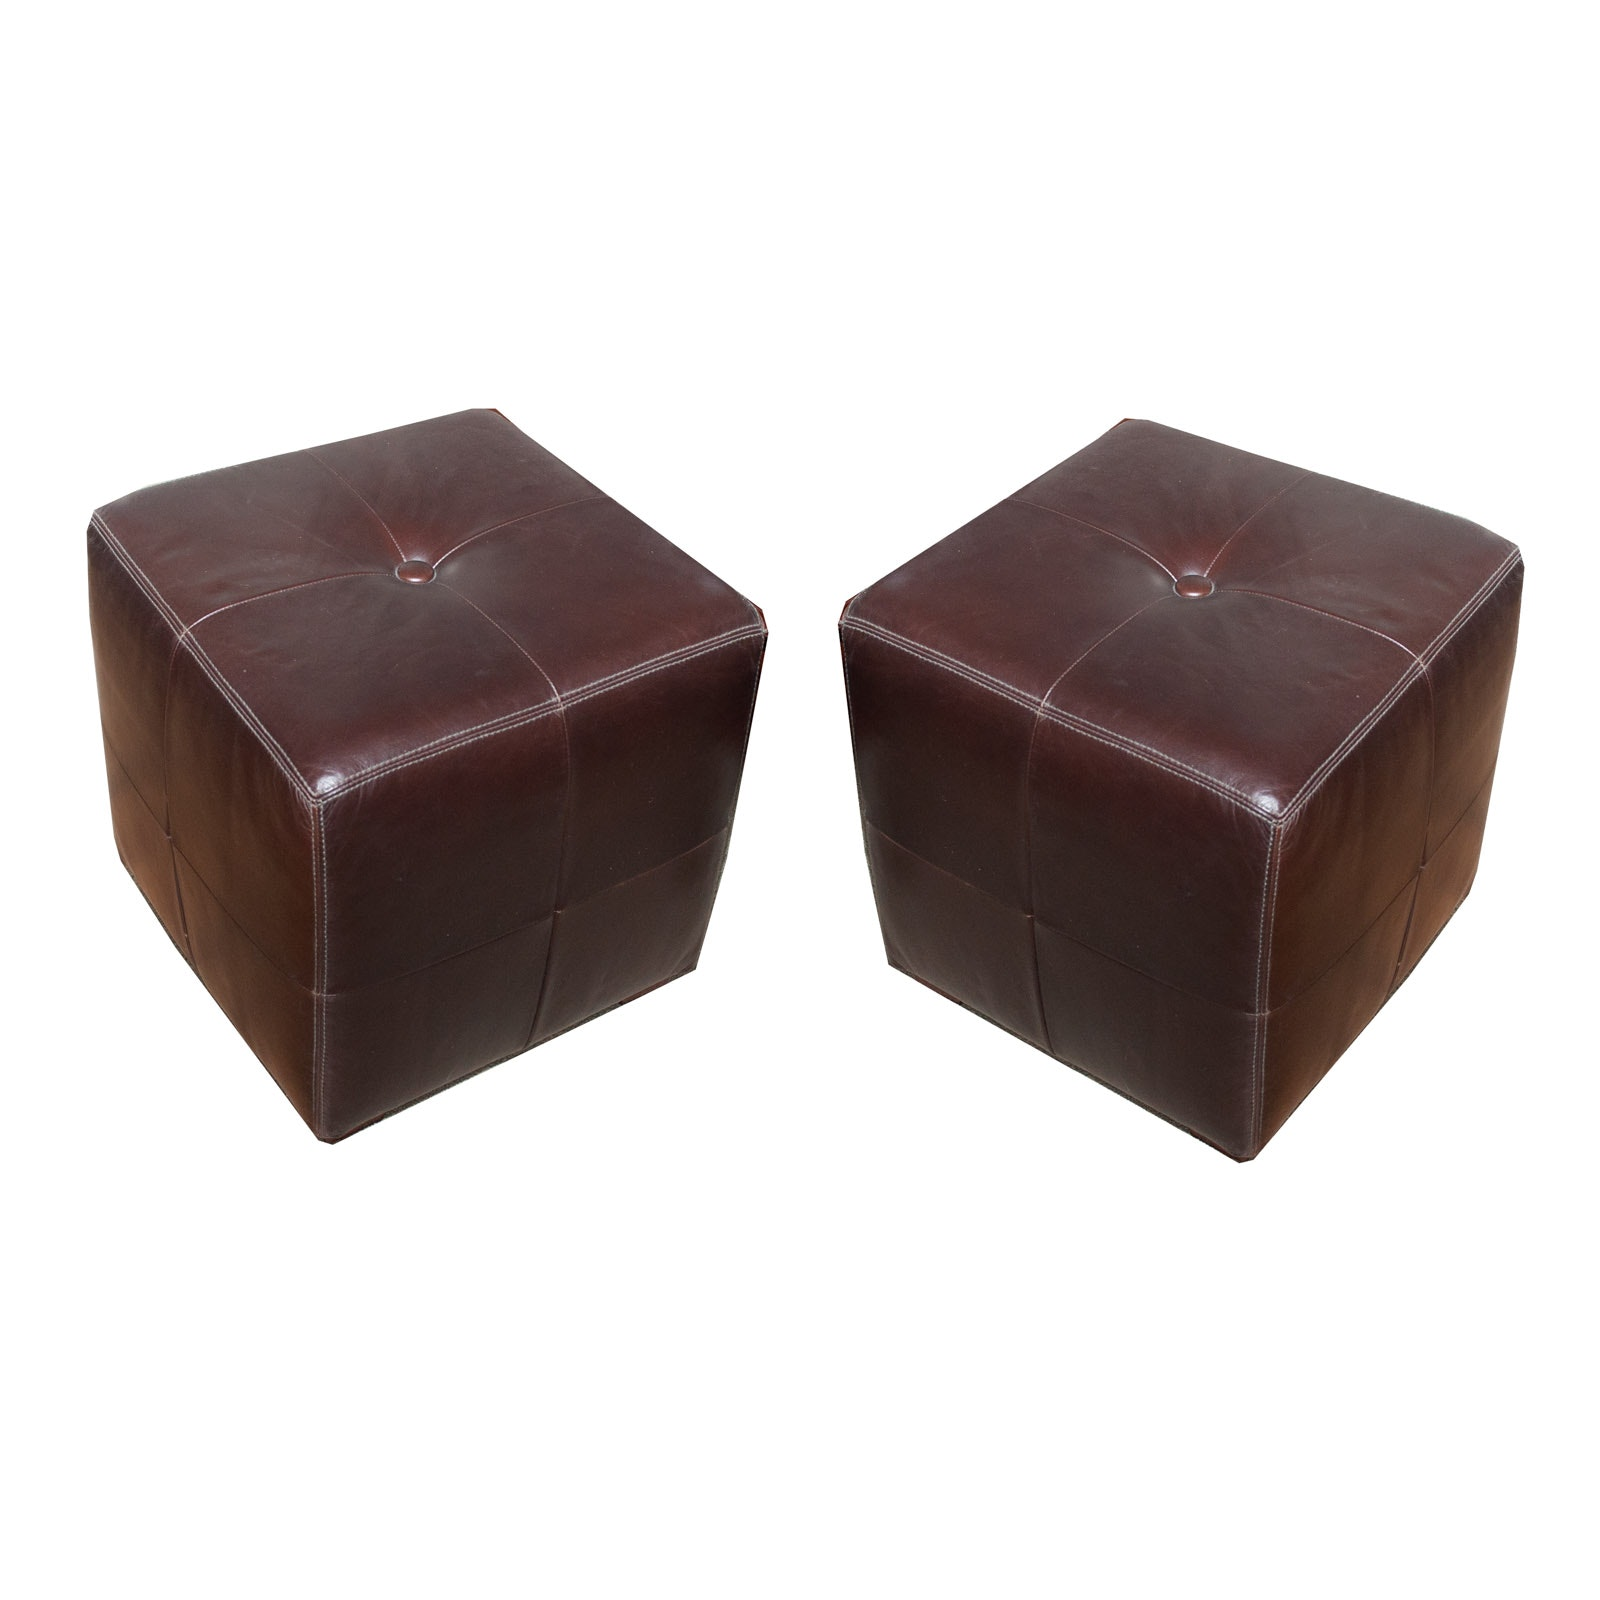 Pottery Barn Brown Leather Poufs